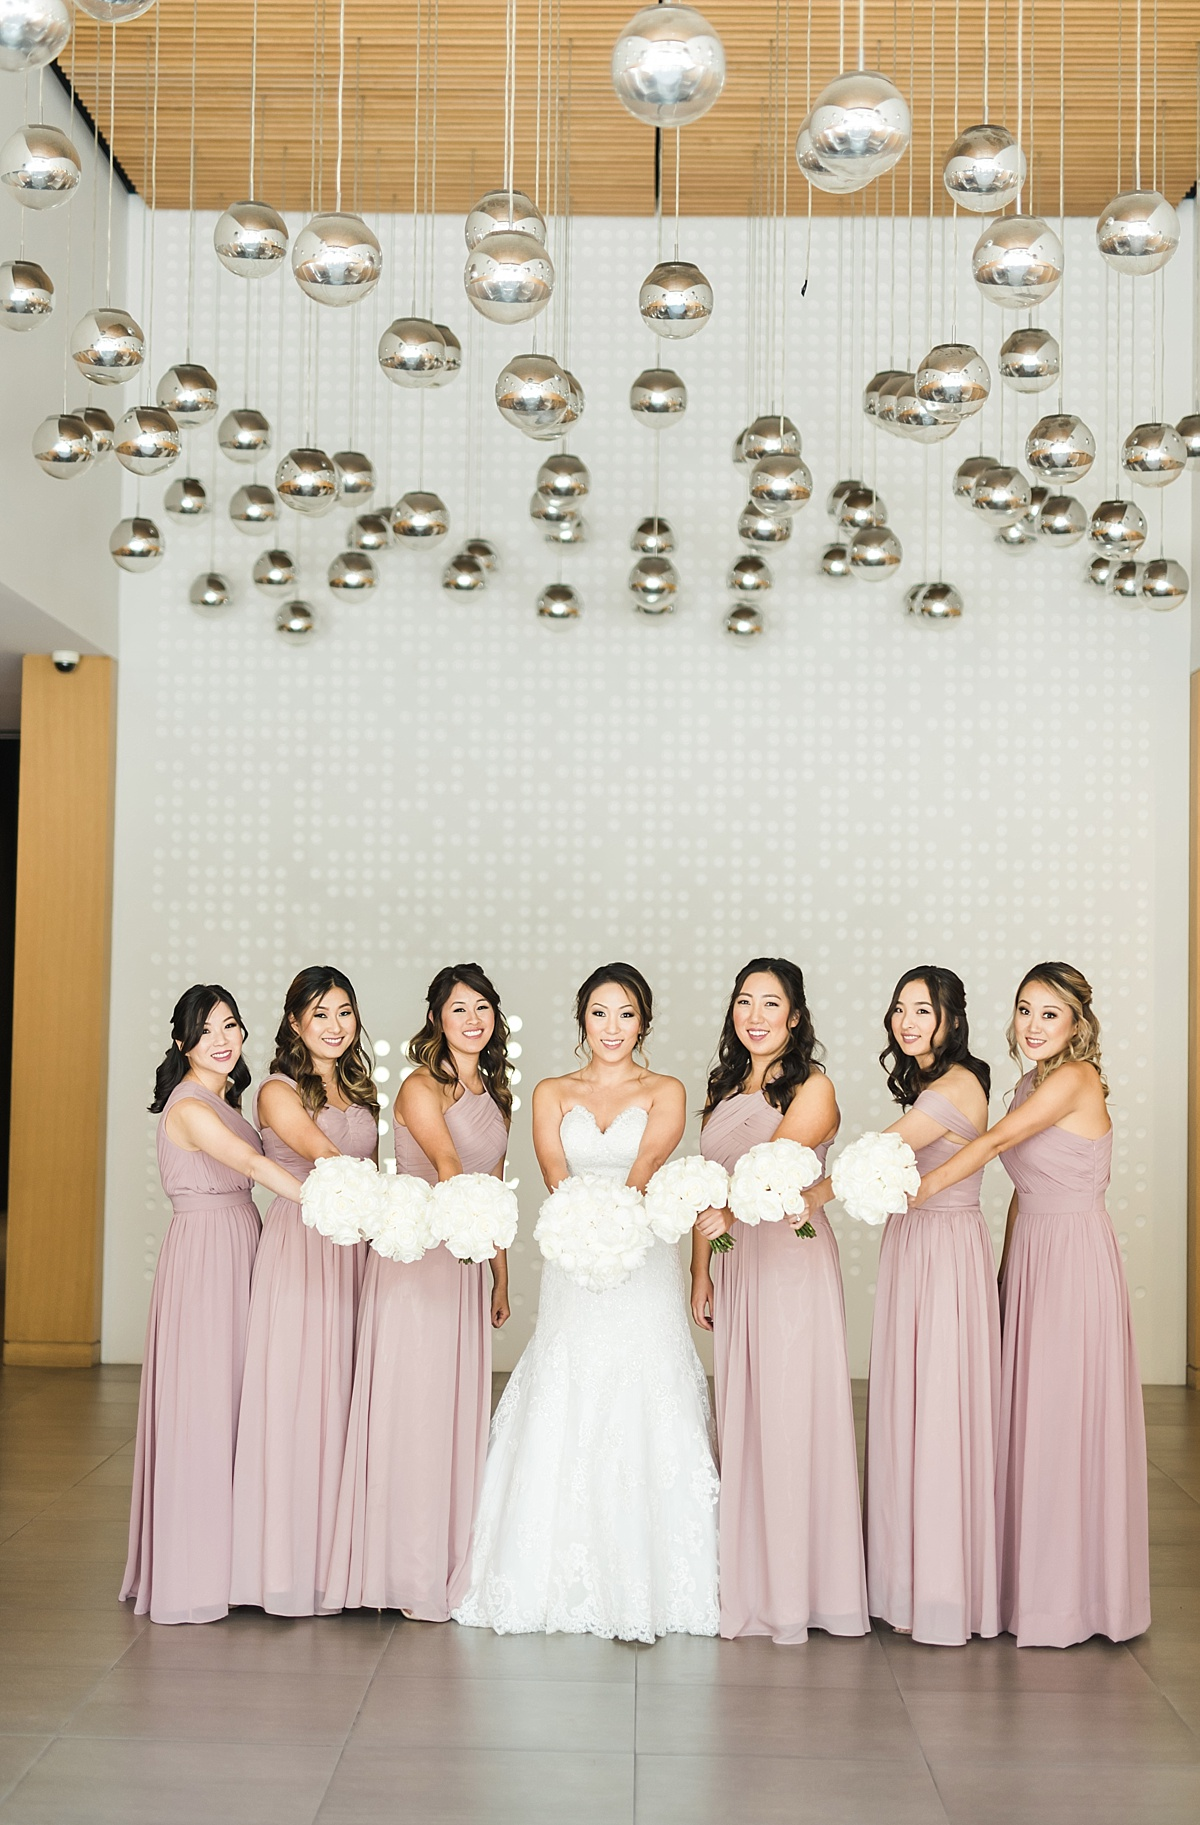 Alexandria-Ballrooms-Los-Angeles-Wedding-Photographer-Sarah_Darin-Carissa-Woo-Photography_0054.jpg